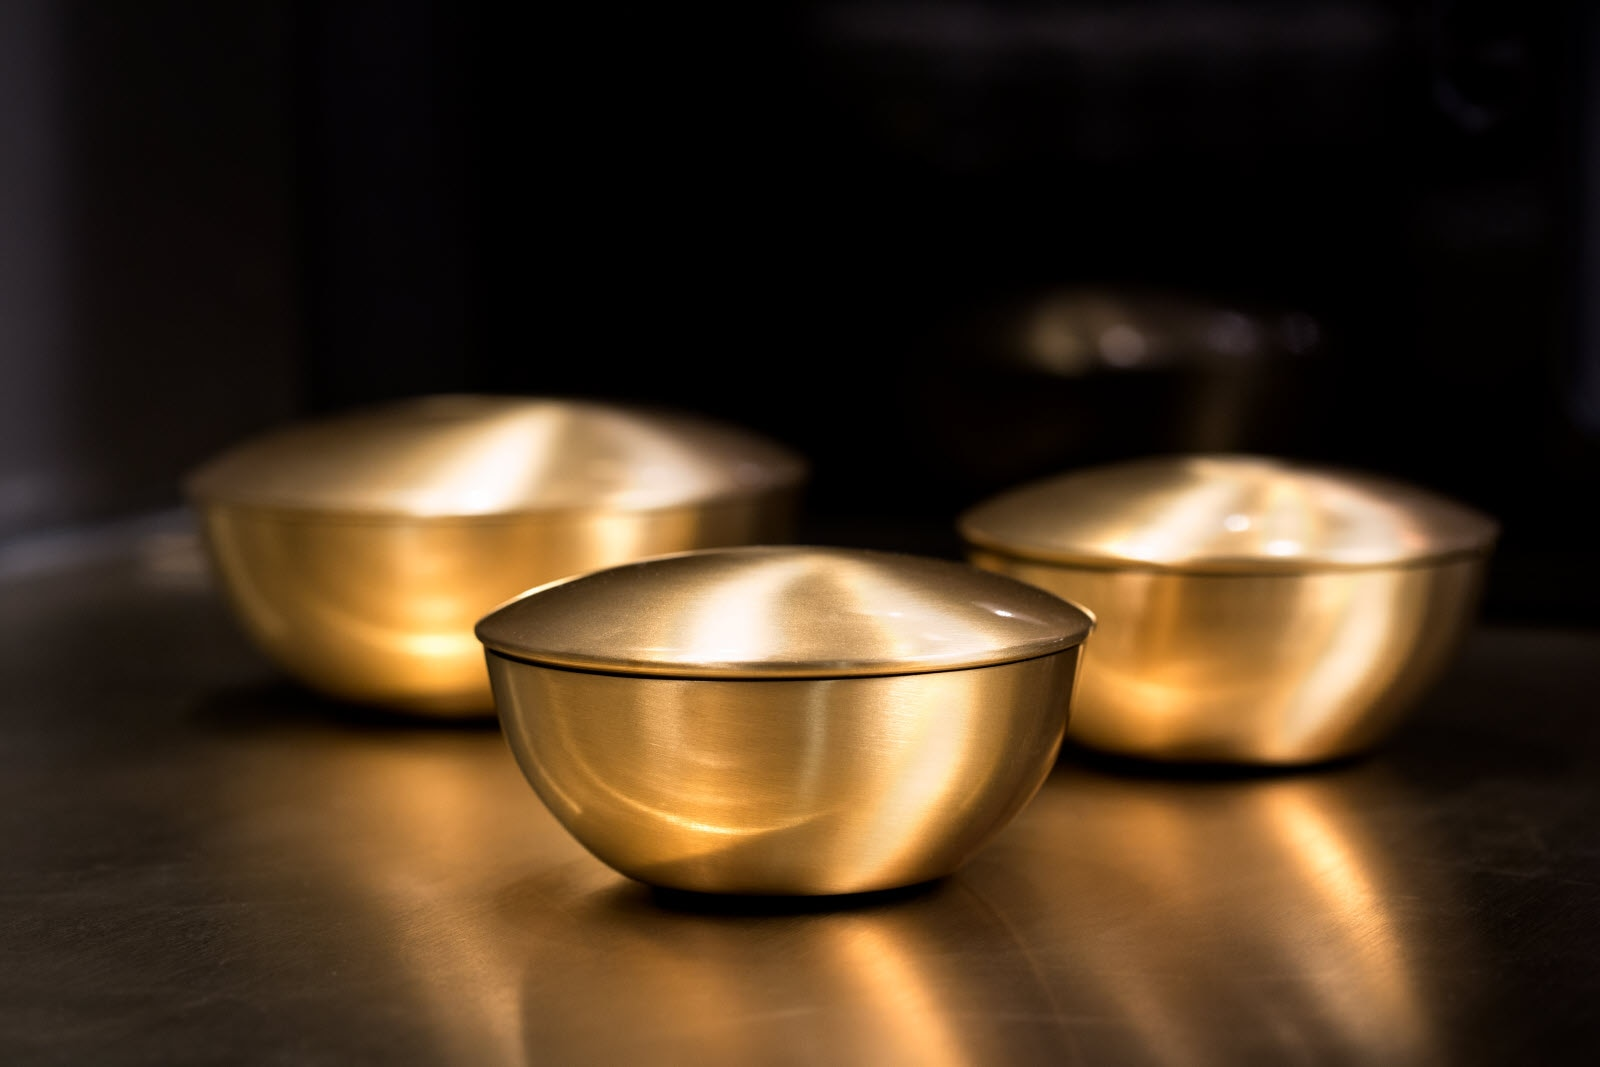 Detail of bowls in meeting room